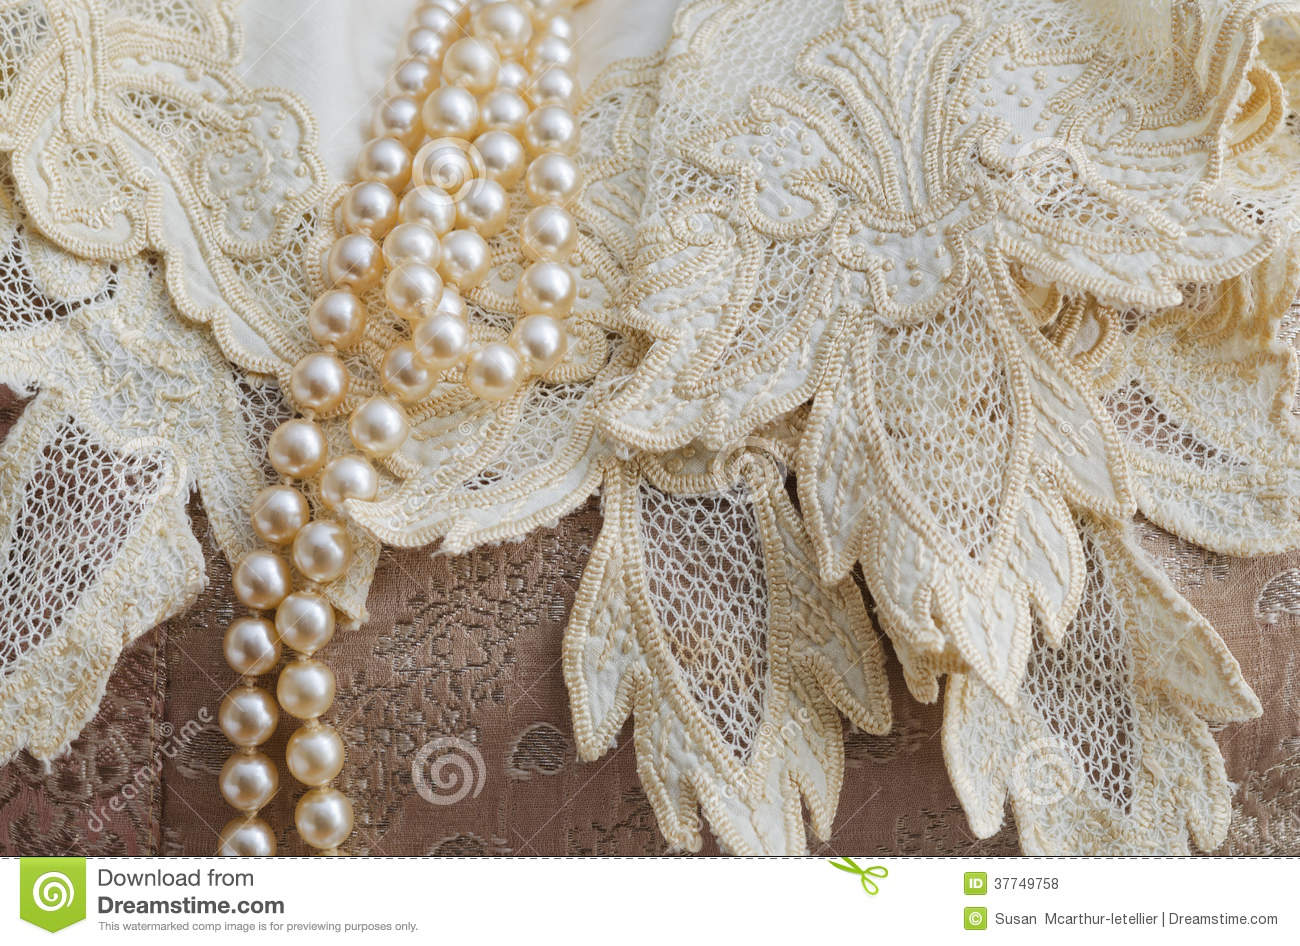 Vintage Lace Handkerchief And Pearls Royalty Free Stock